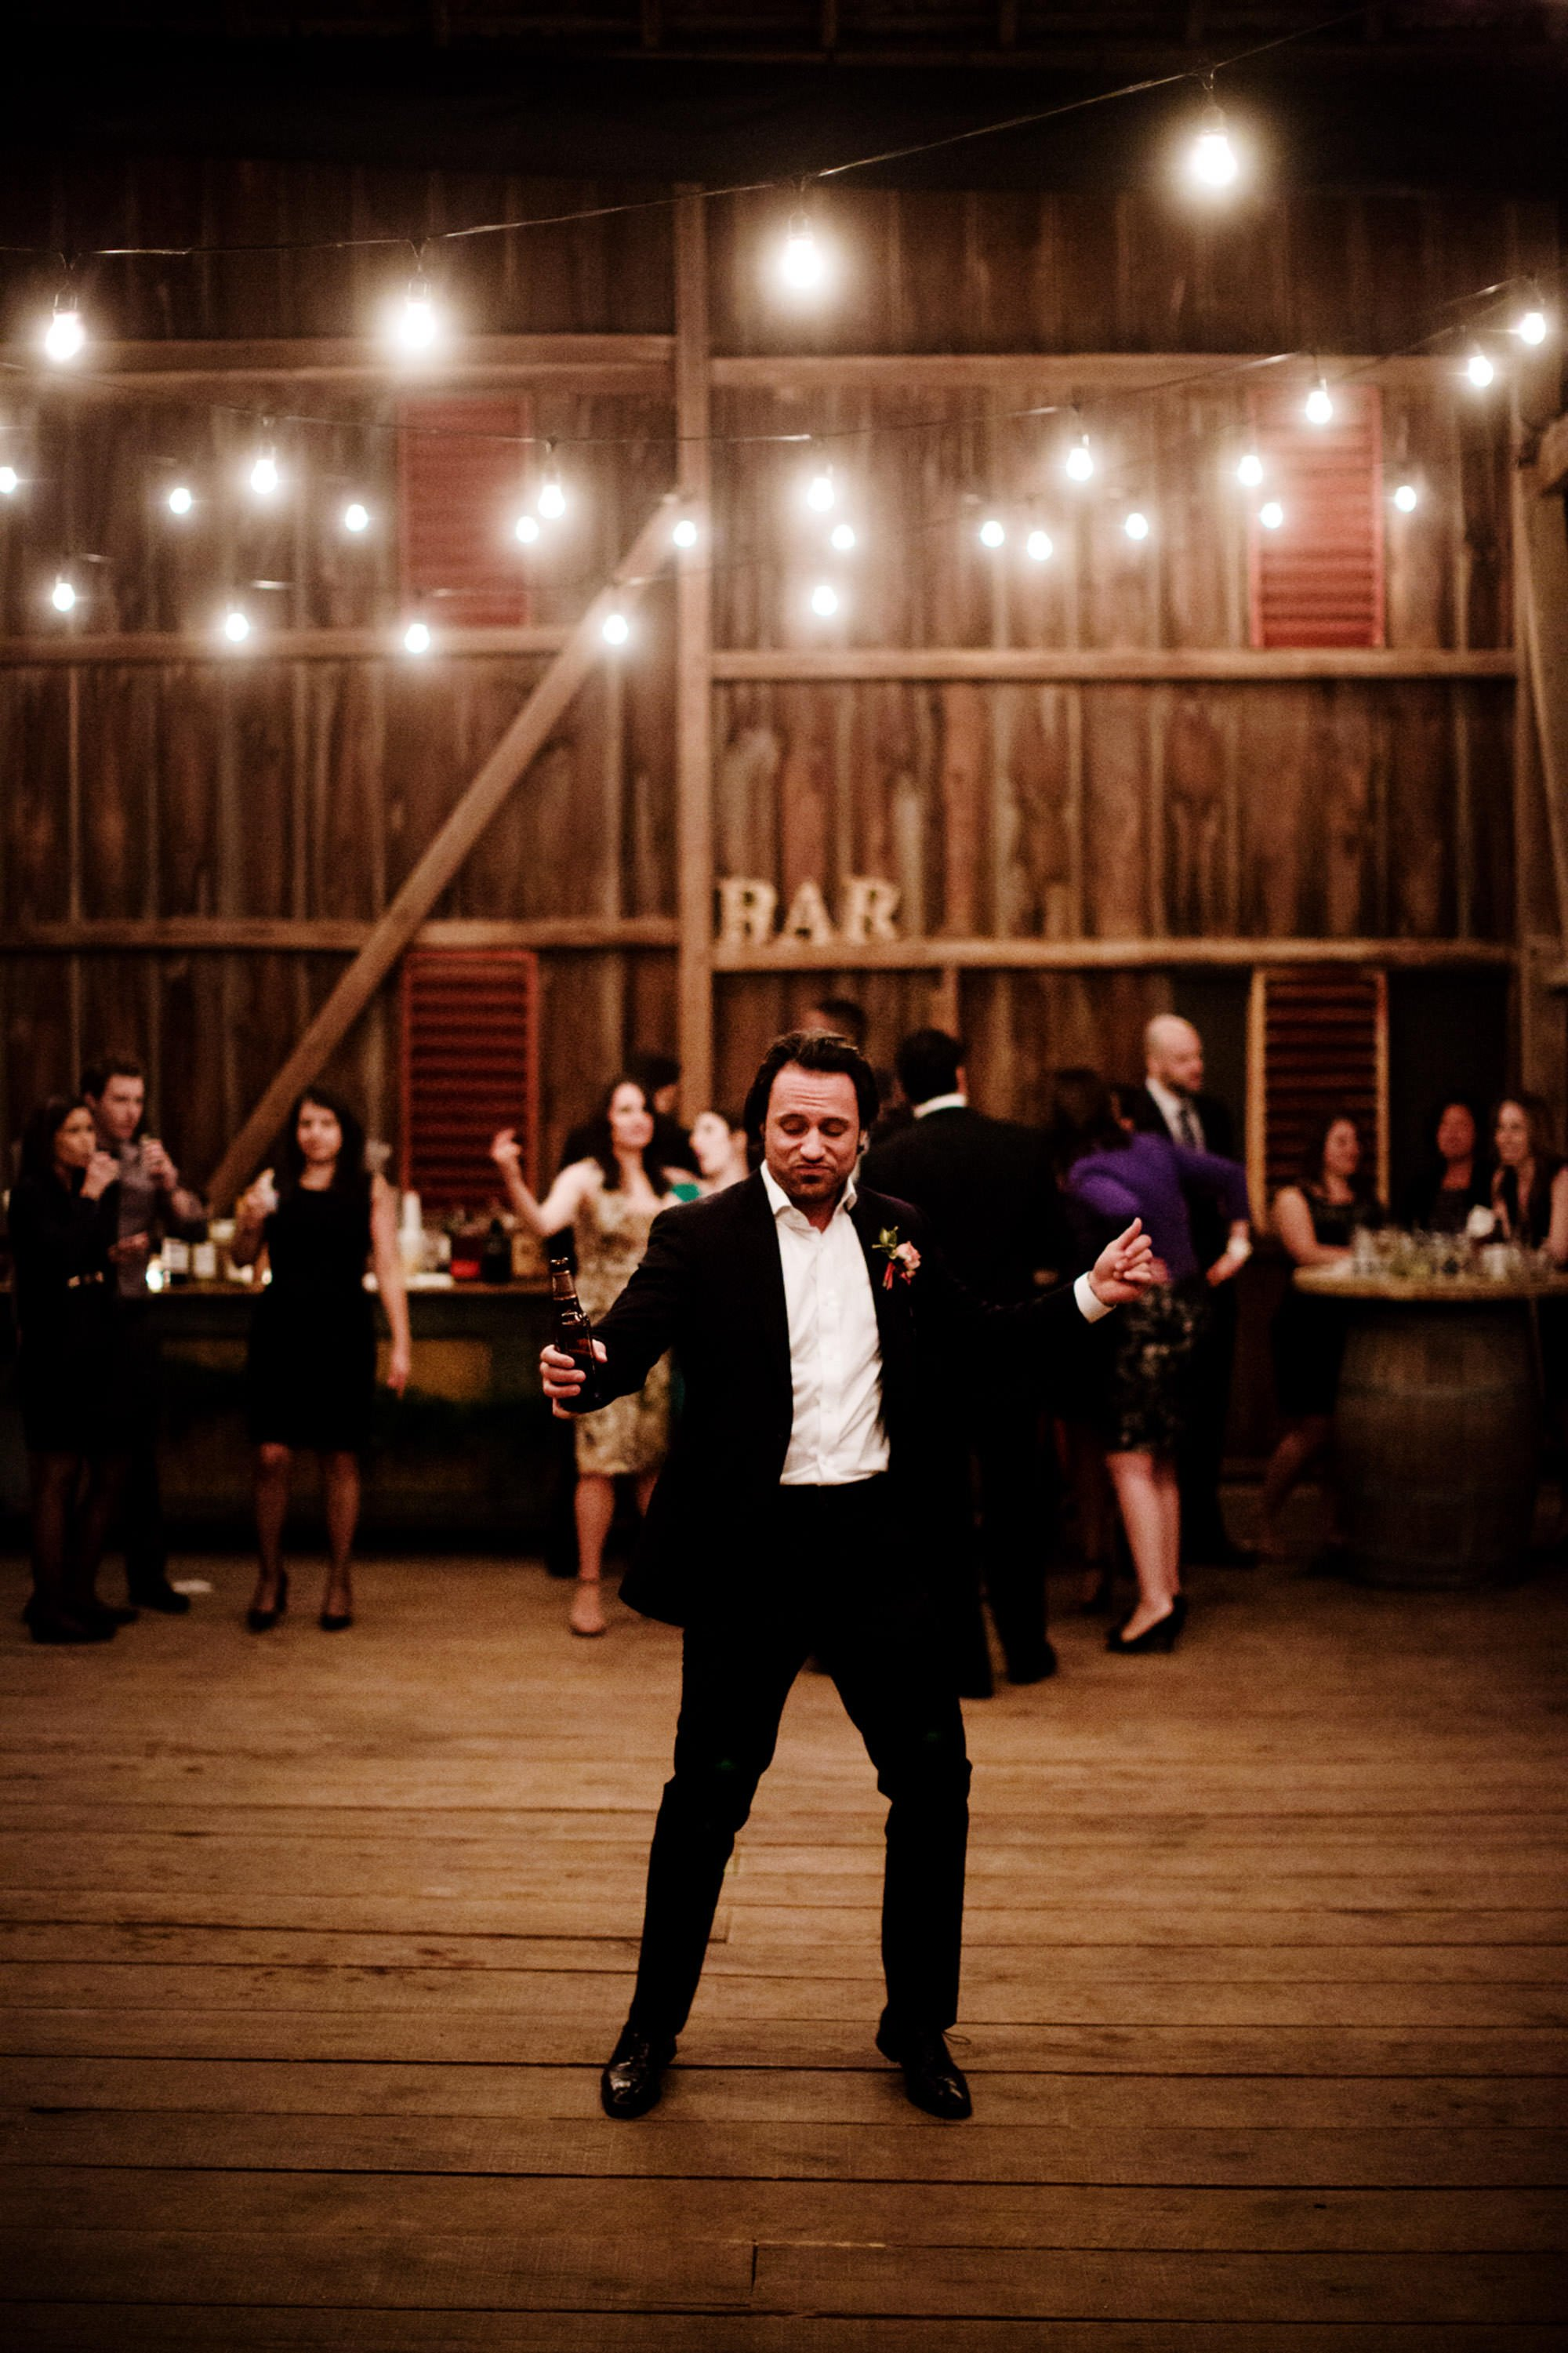 Guests dance in the barn during the reception at Riverside on the Potomac.